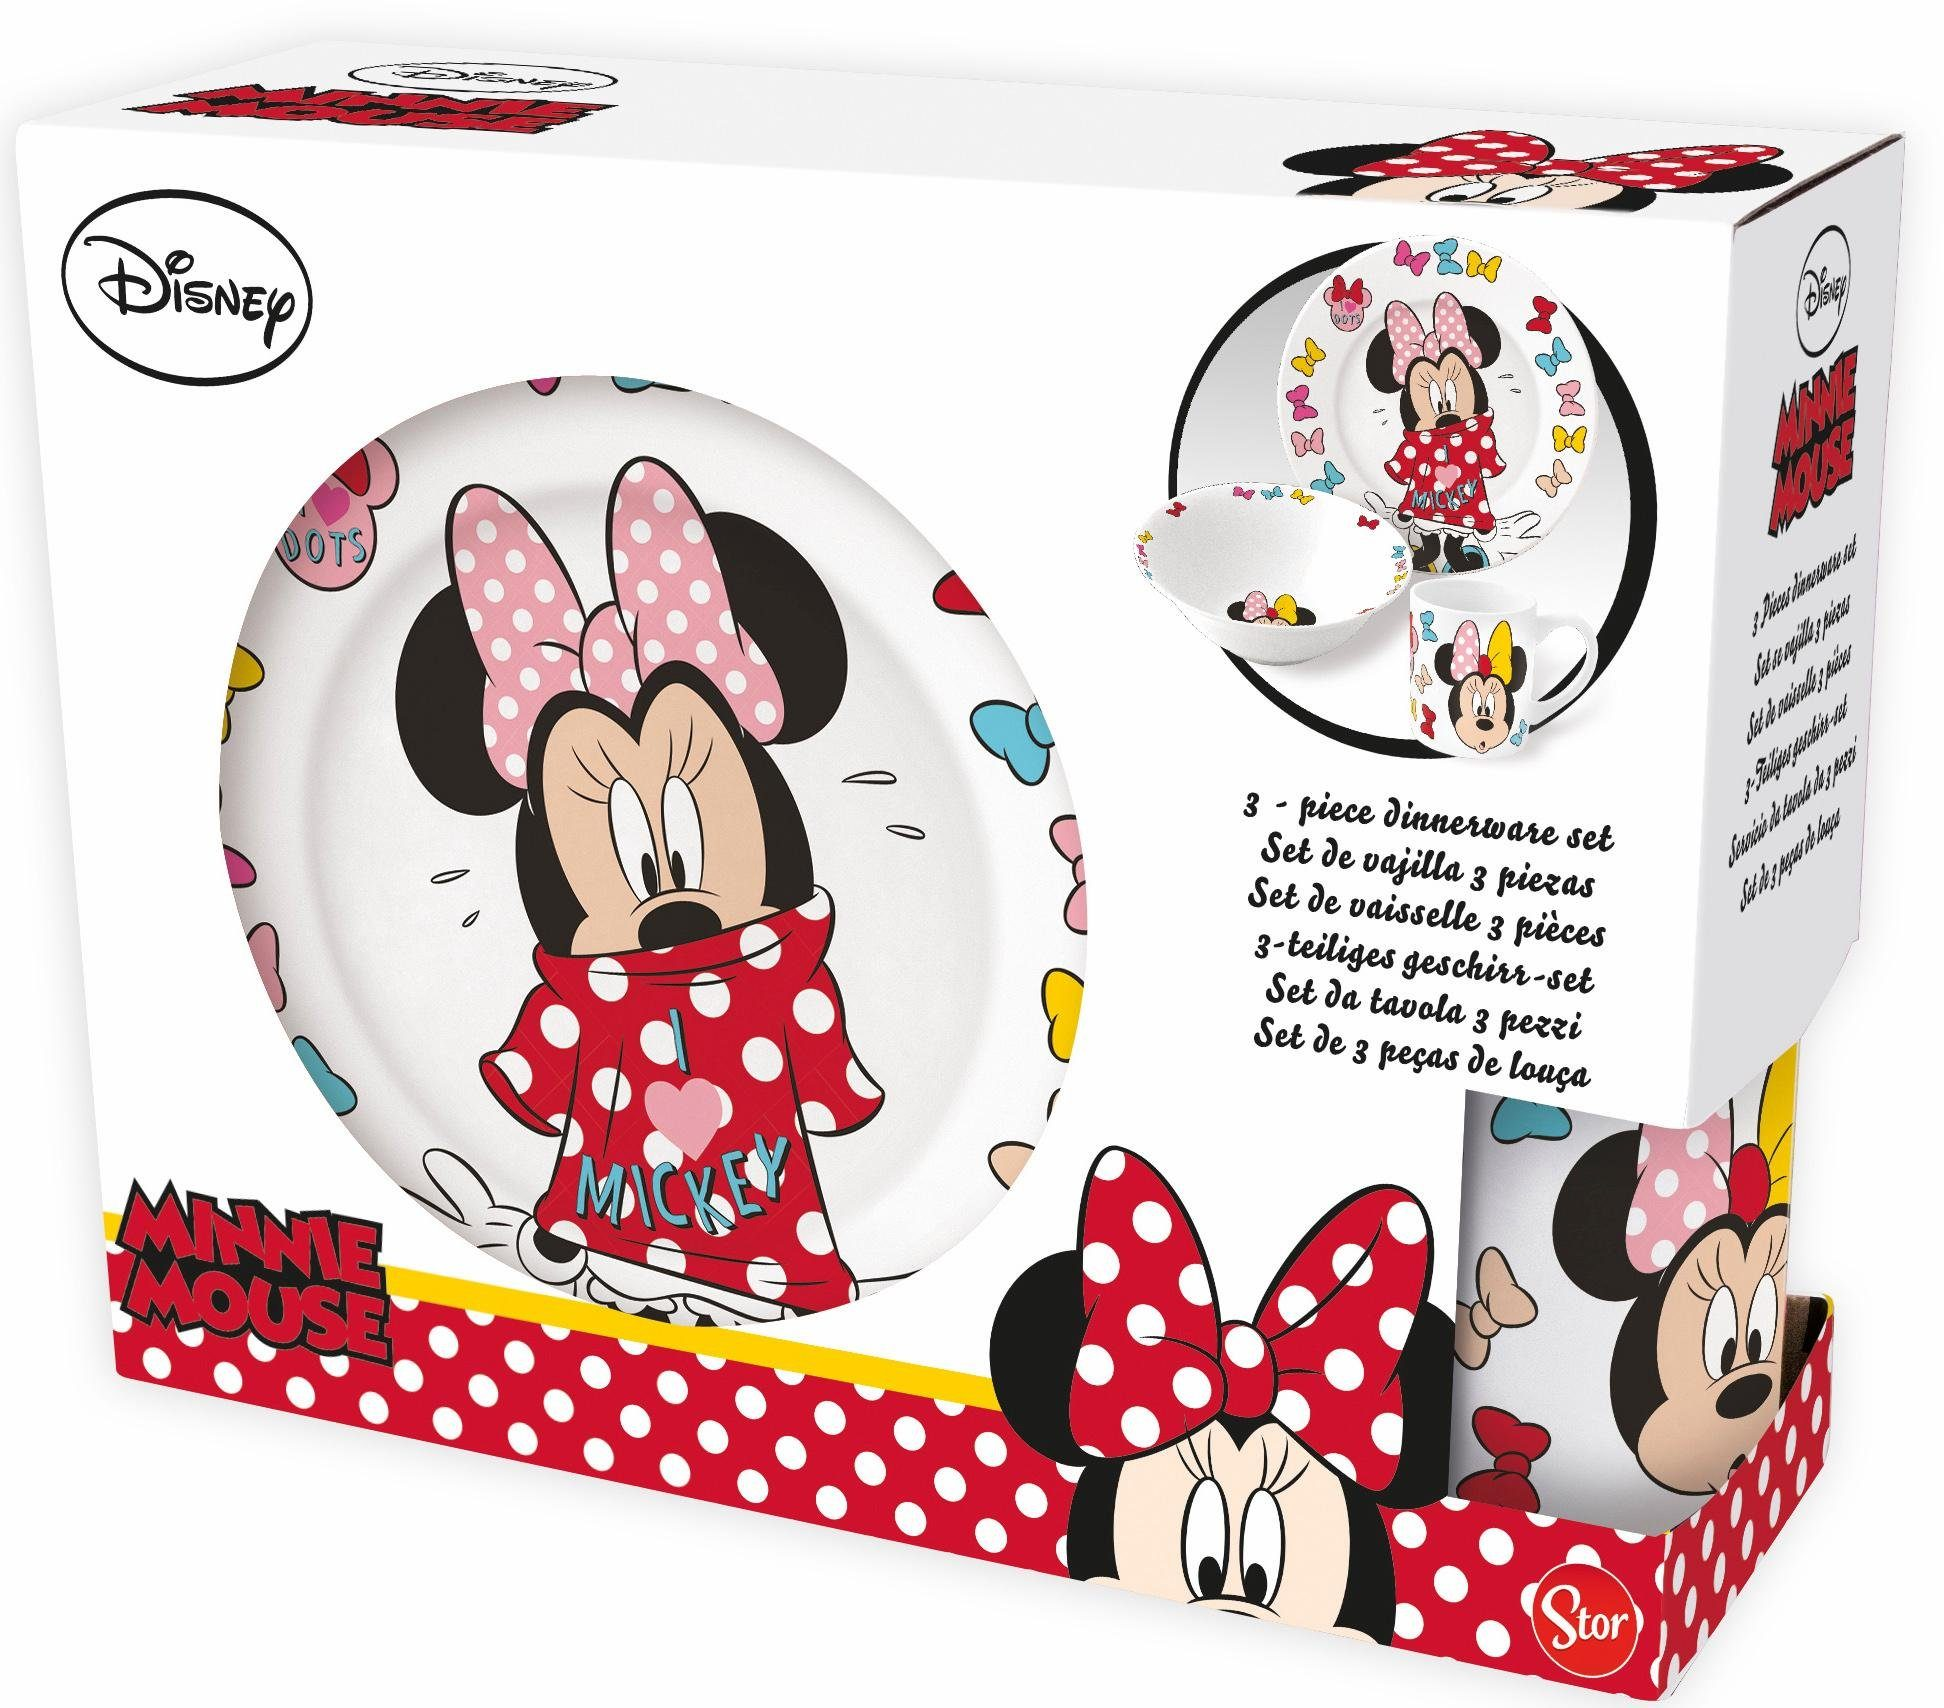 p:os Kindergeschirrset, »Disney Minnie Mouse Keramikset«